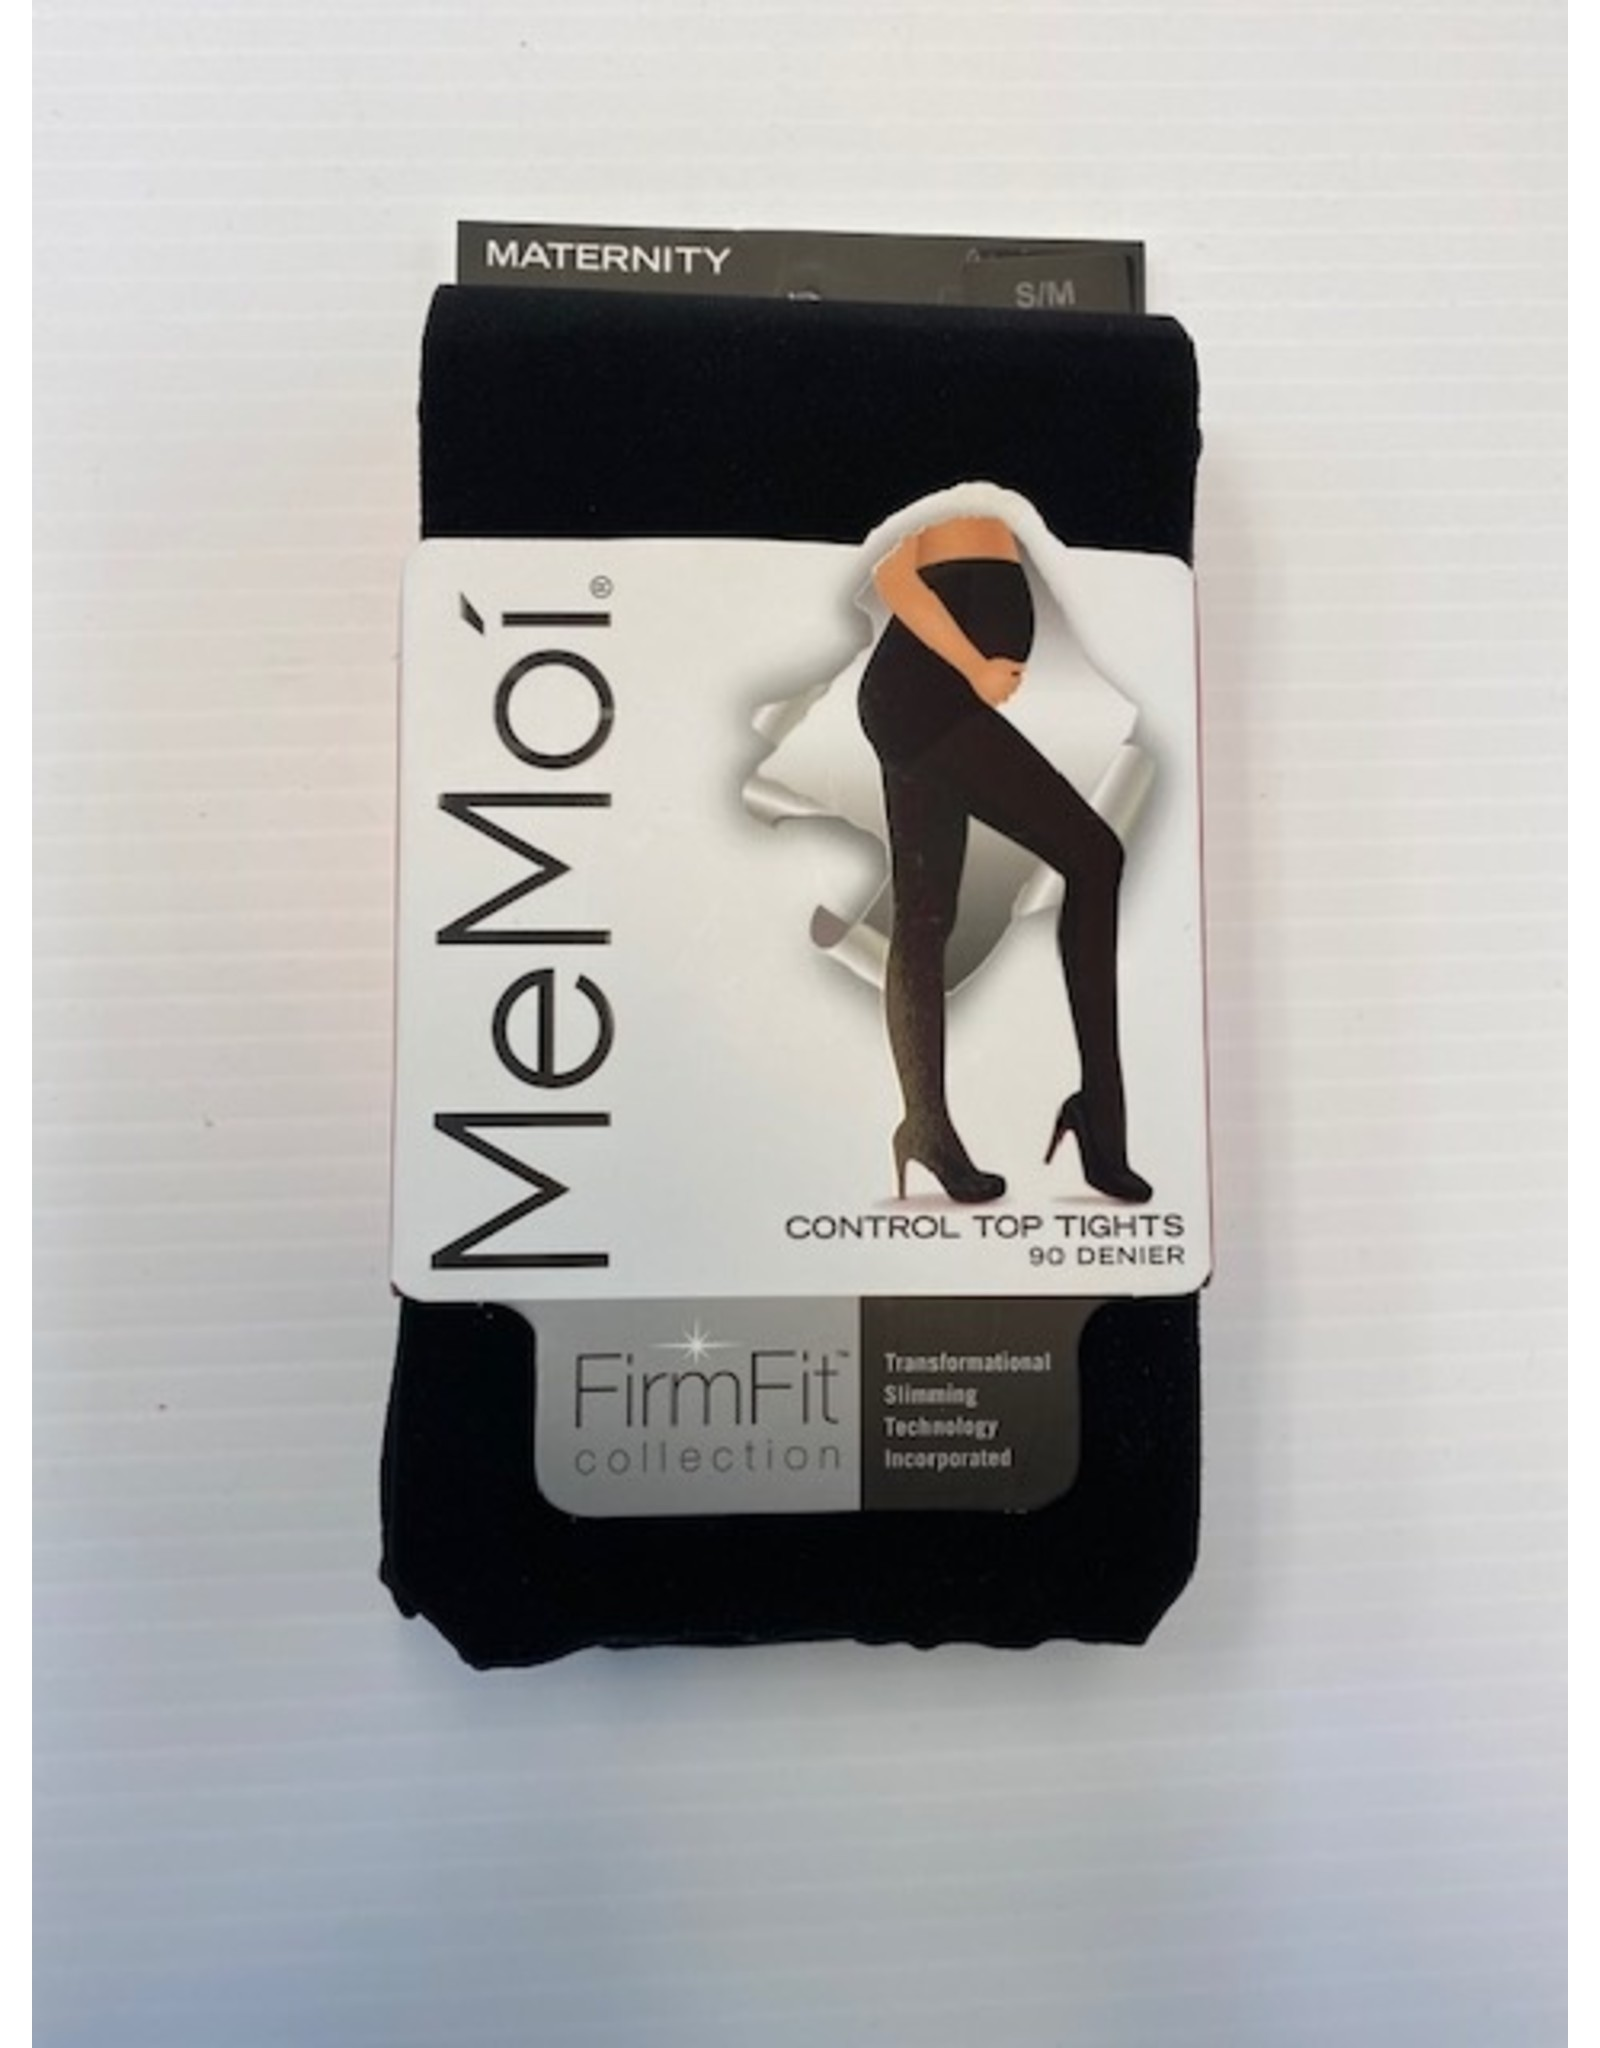 Memoi Memoi Women's Maternity FirmFit 90 Denier Control Top with Under Belly Band Support Tights MA-892